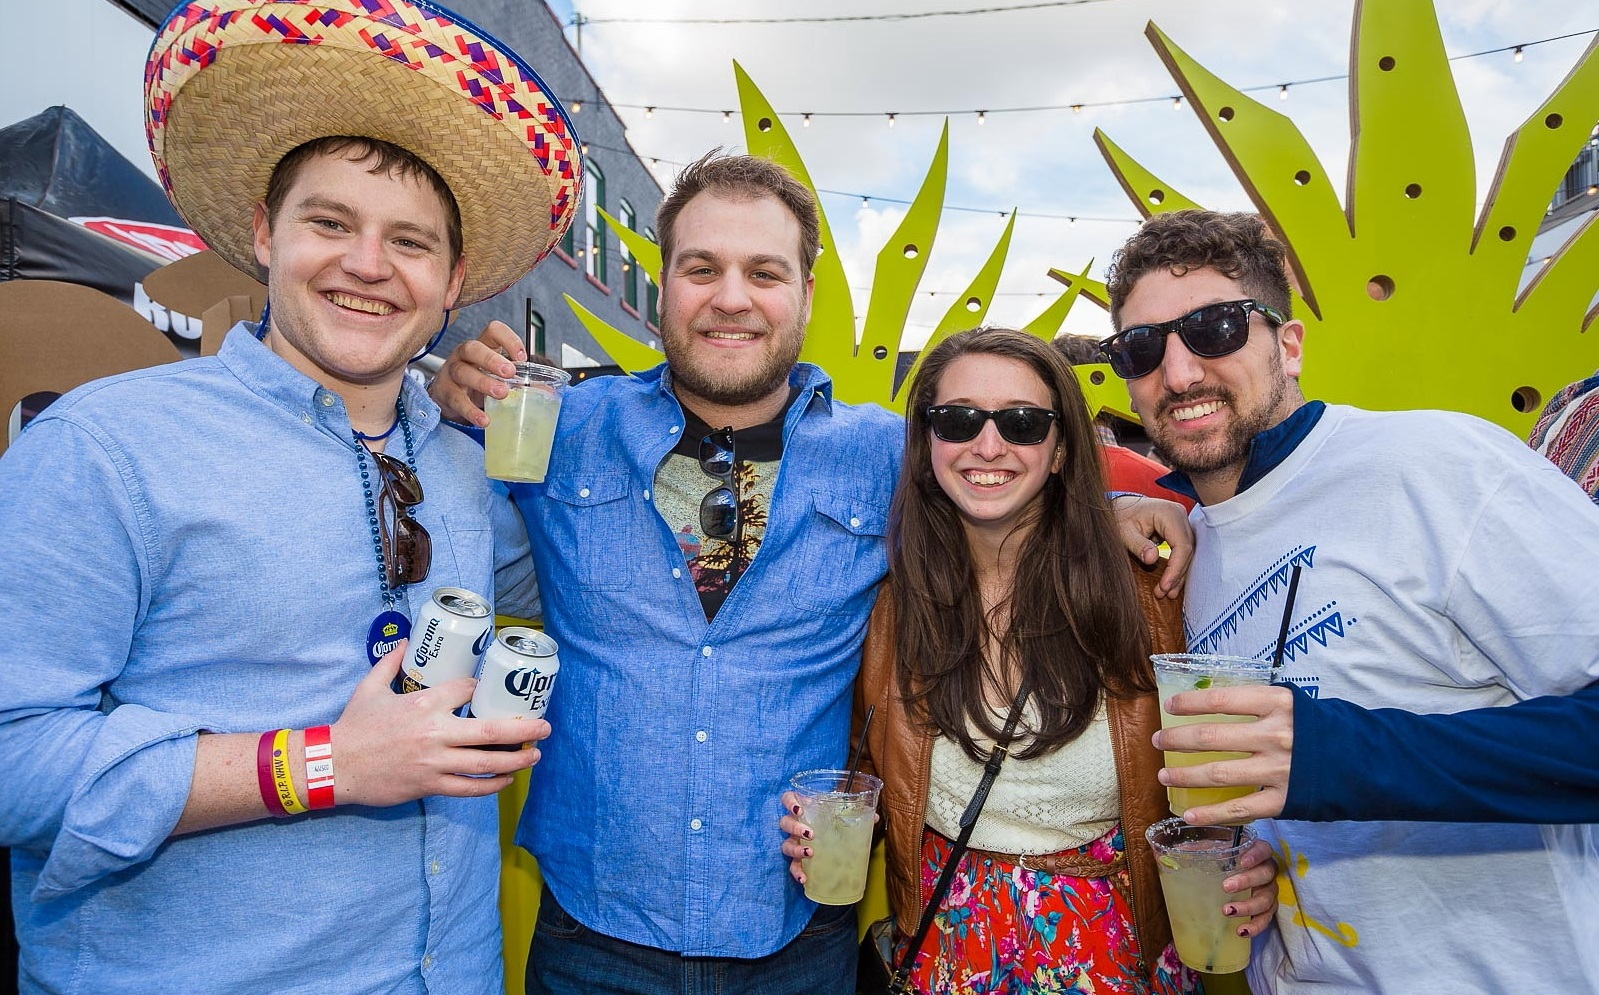 Smiling faces at the 2016 Deep South Taco Cinco de Mayo festivities. (Don Nieman/Special to The News)